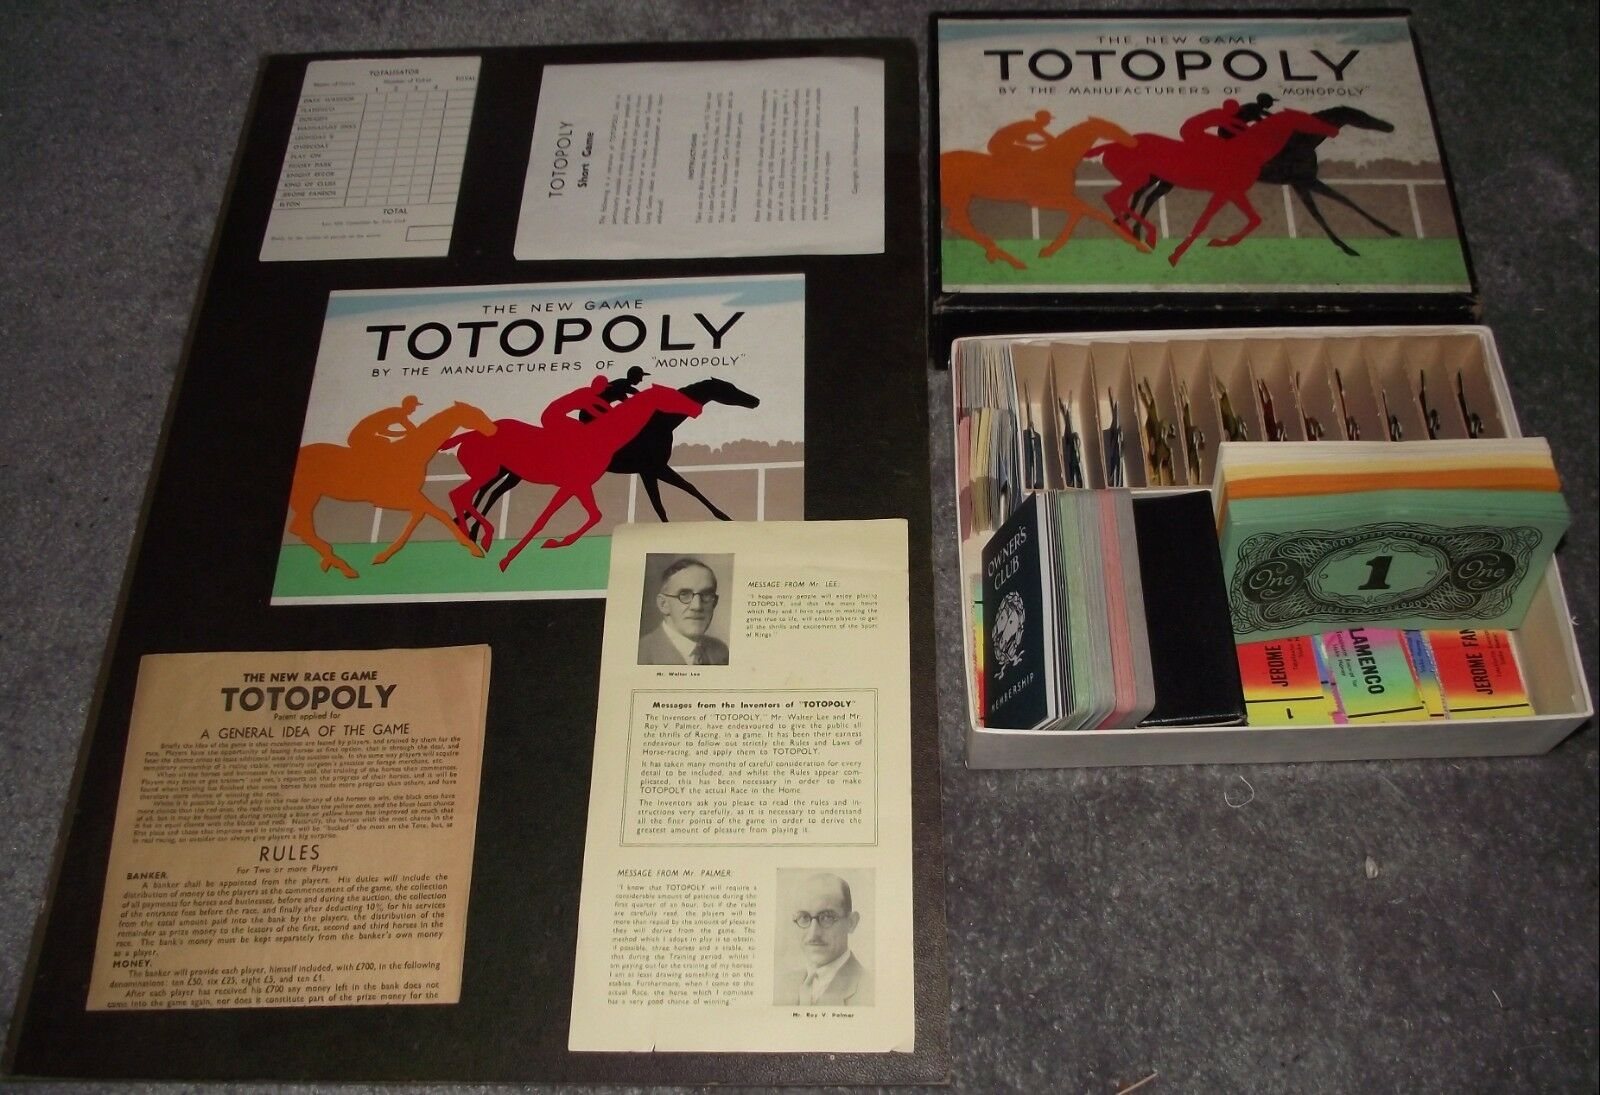 SUPERB UNIQUE 1939 WADDINGTONS THE NEW GAME TOTOPOLY UNPLAYED CONTENTS MIB